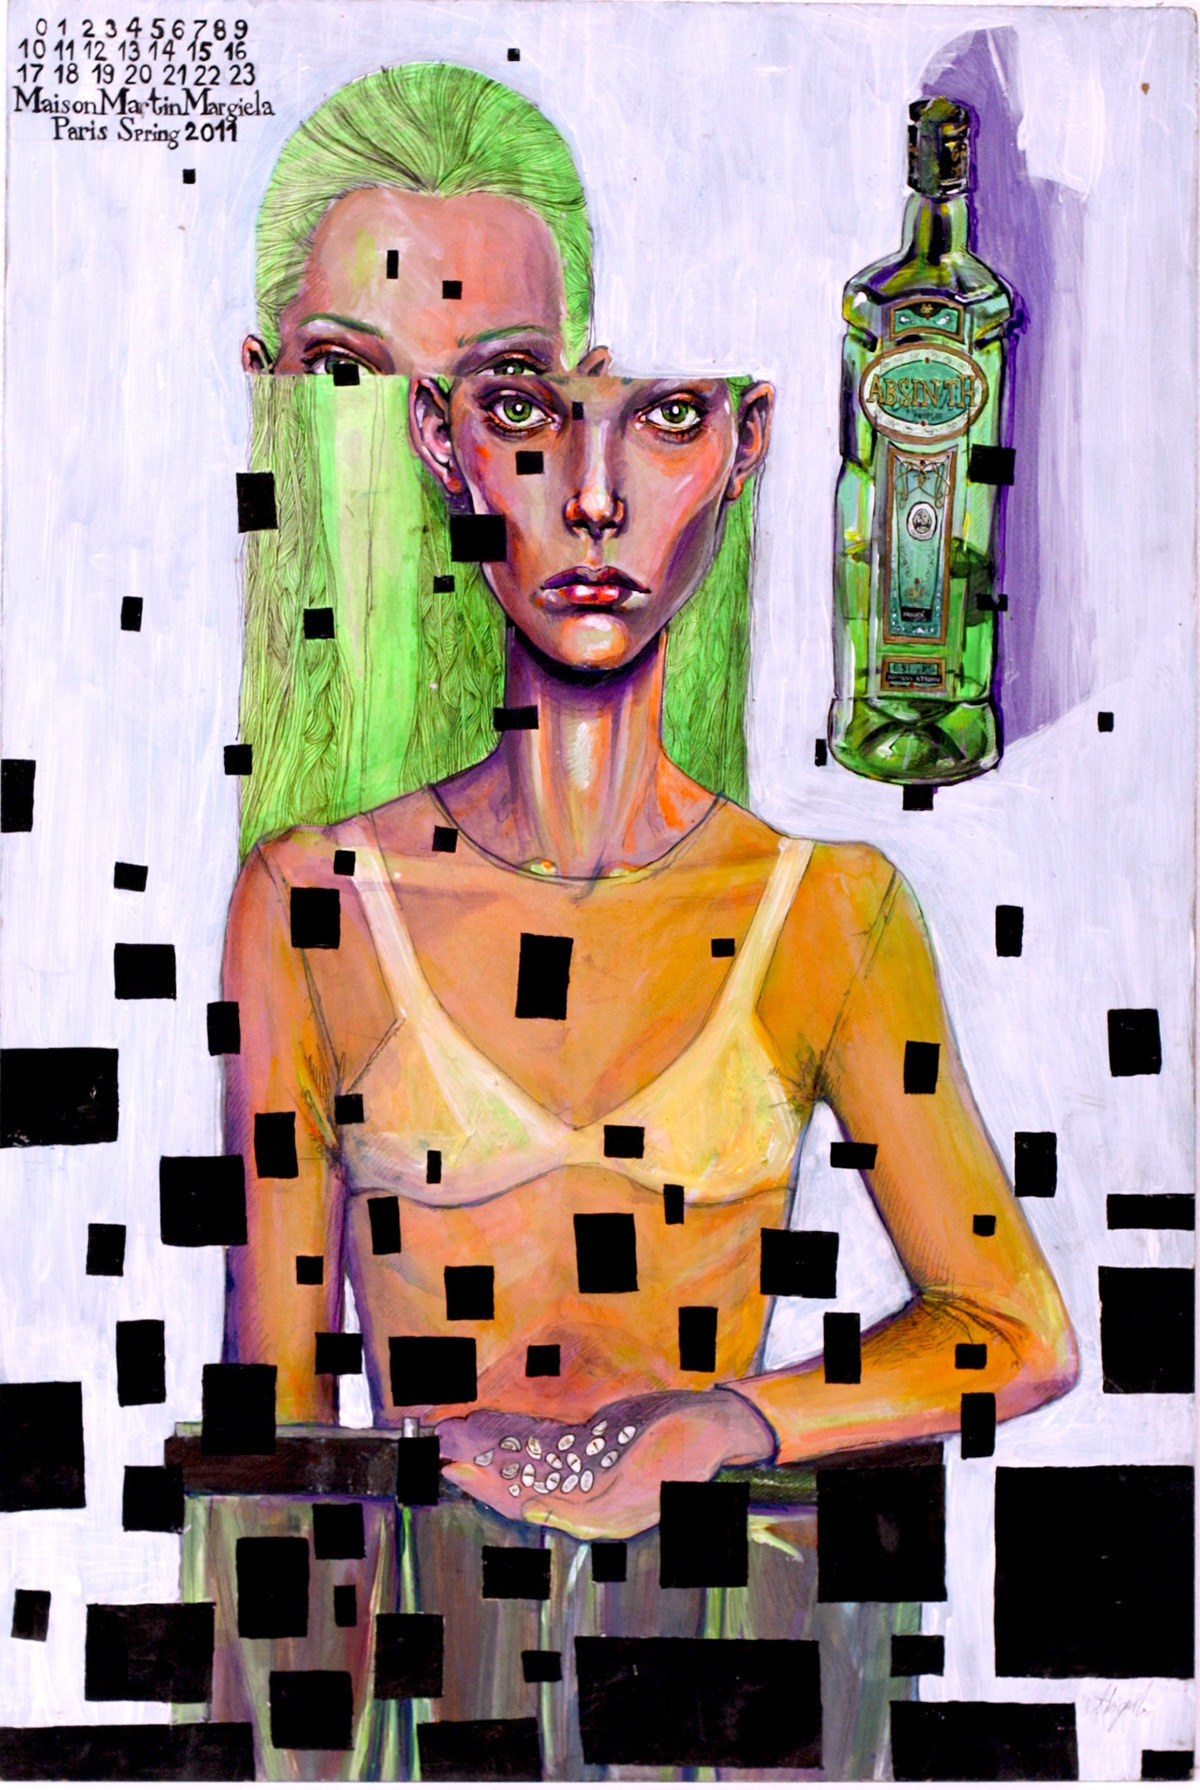 faSHioN_aND_dePResSioN_(2016)_ _ _acRyLic_on_CAnvas_wiTh EmBRoidERy - 1 by wiRTh aBigAiL